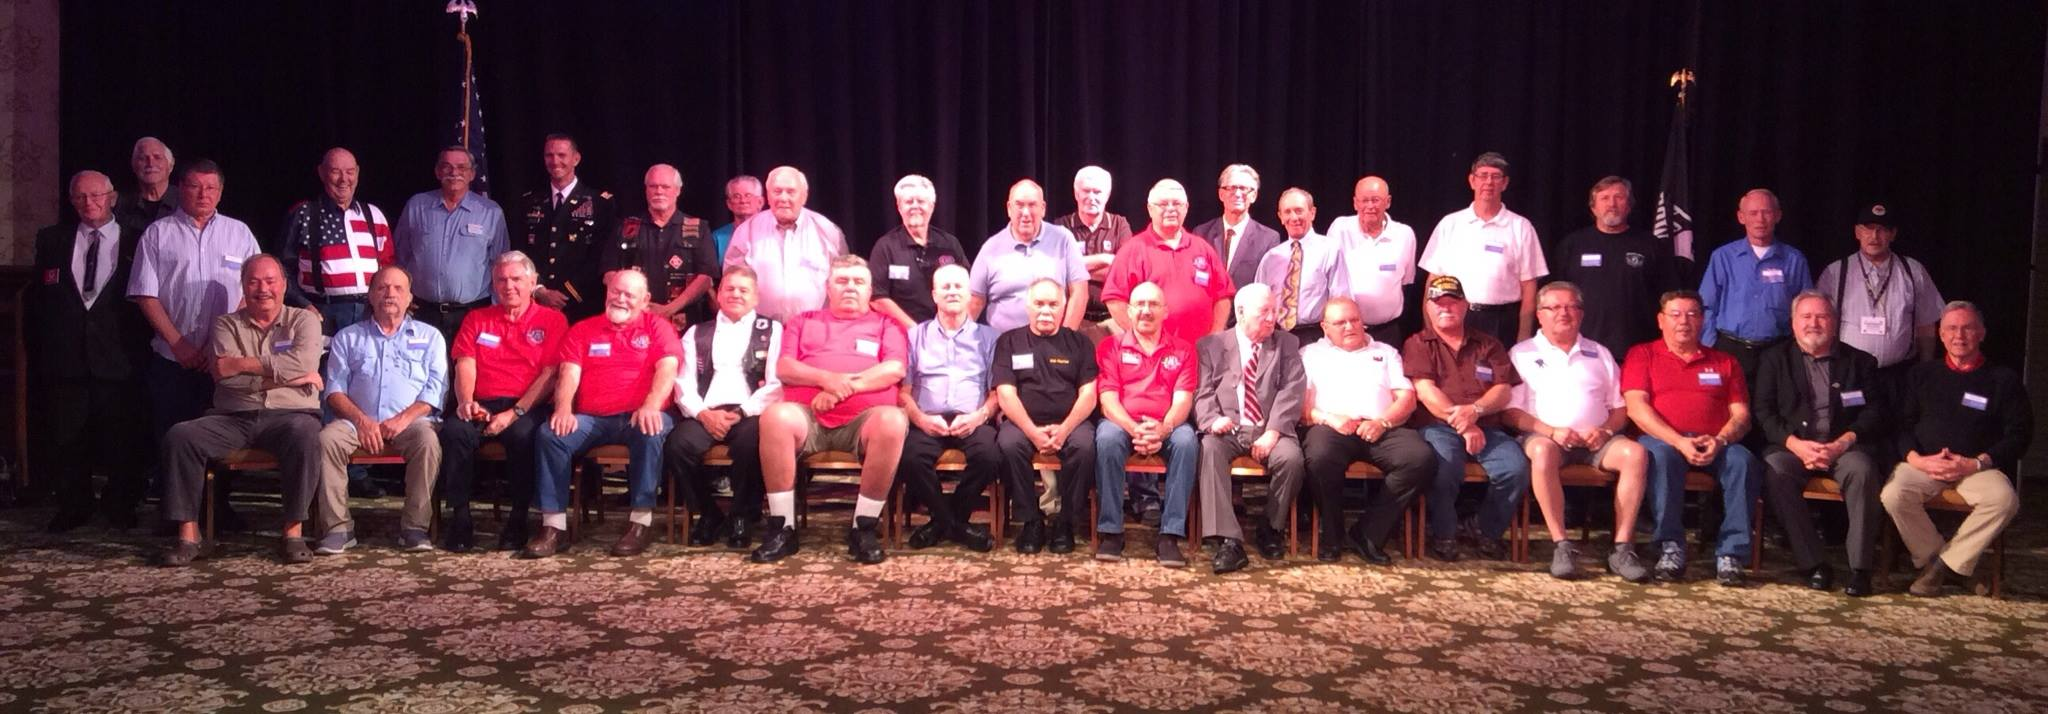 Reno-299th-Engineers-Reunion